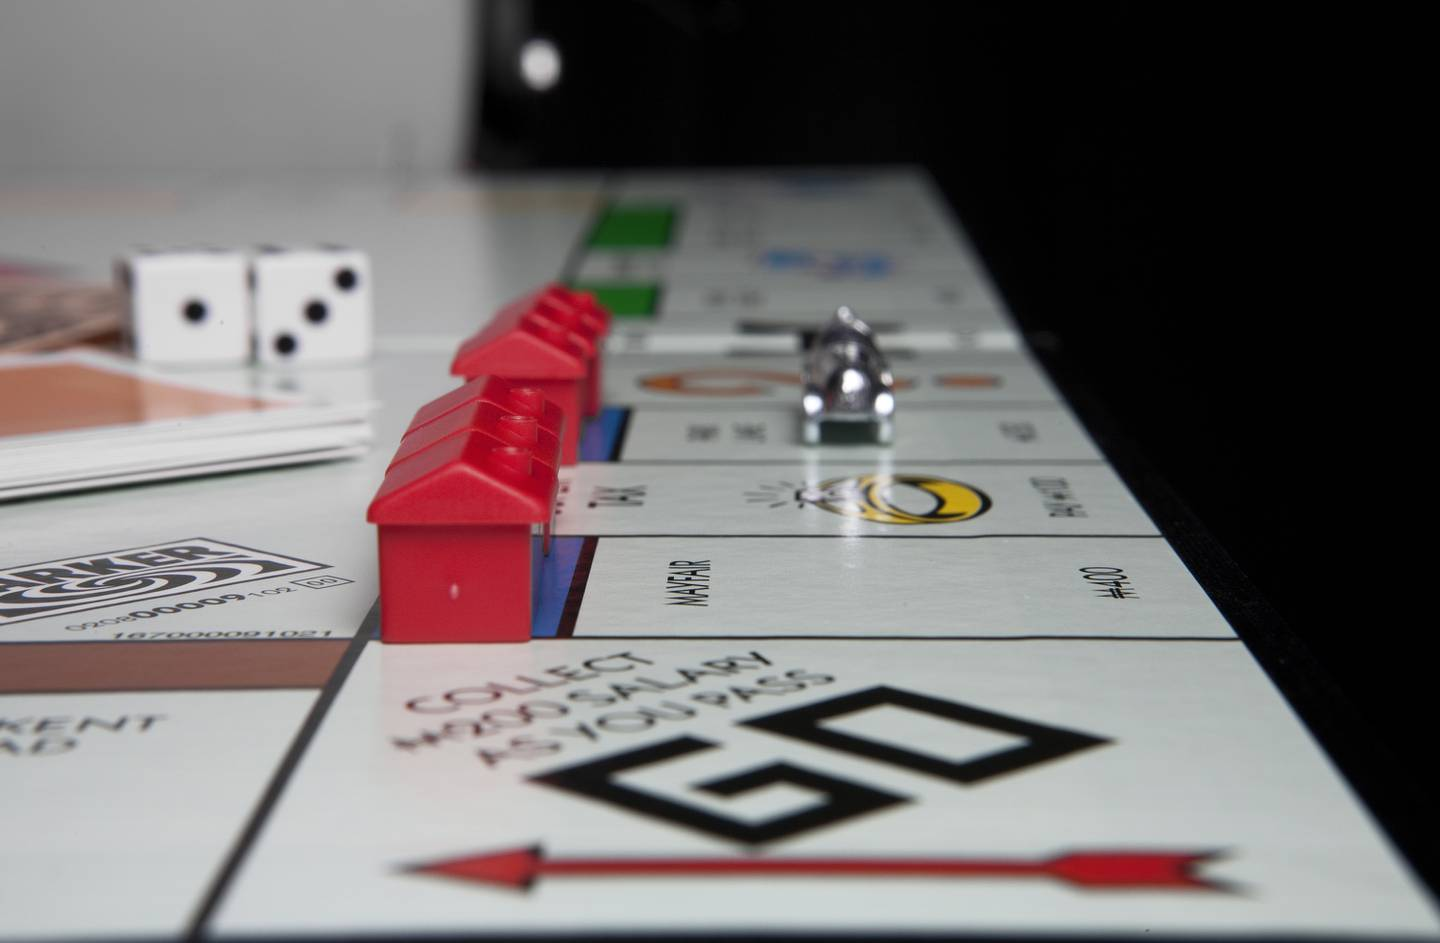 November 30 2010, Abu Dhabi, UAE:  ATTENTION NATHAN ESTEP:  For a story about property taxes. The images use a monopoly board to illustrate an article about real estate and financing in the UAE.  Lee Hoagland/ The National